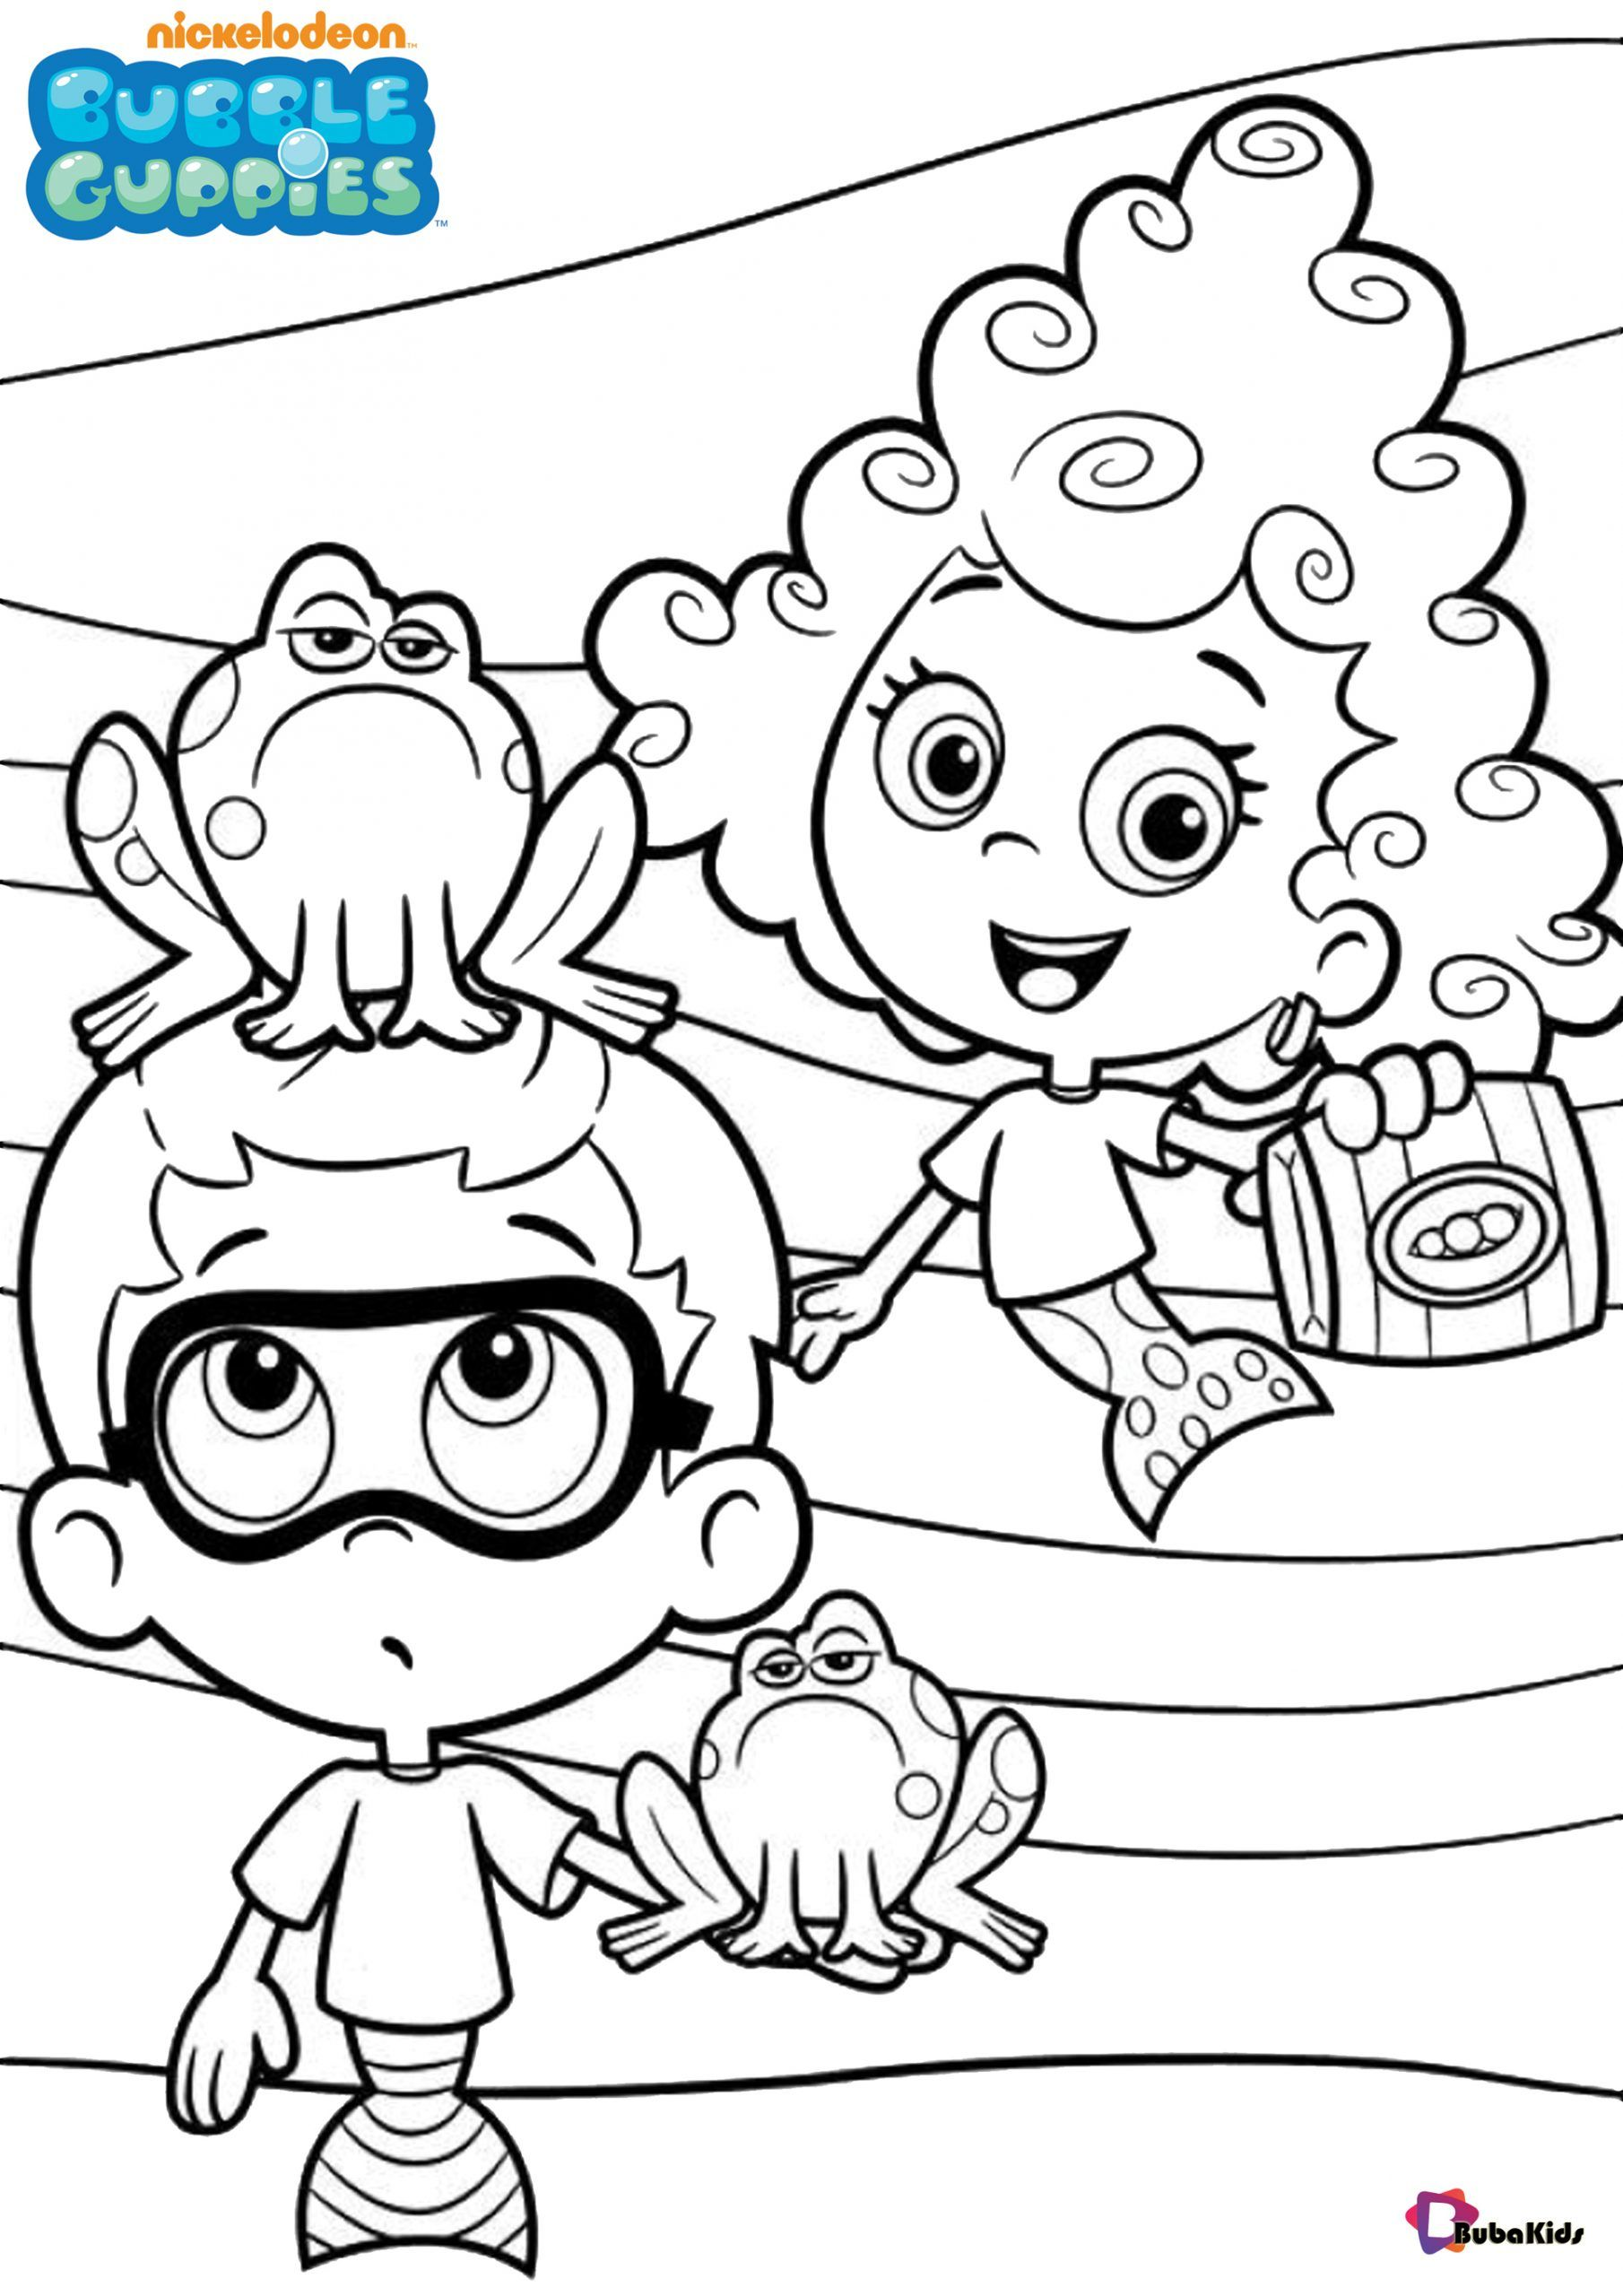 Free download Bubble Guppies coloring pages Collection of cartoon